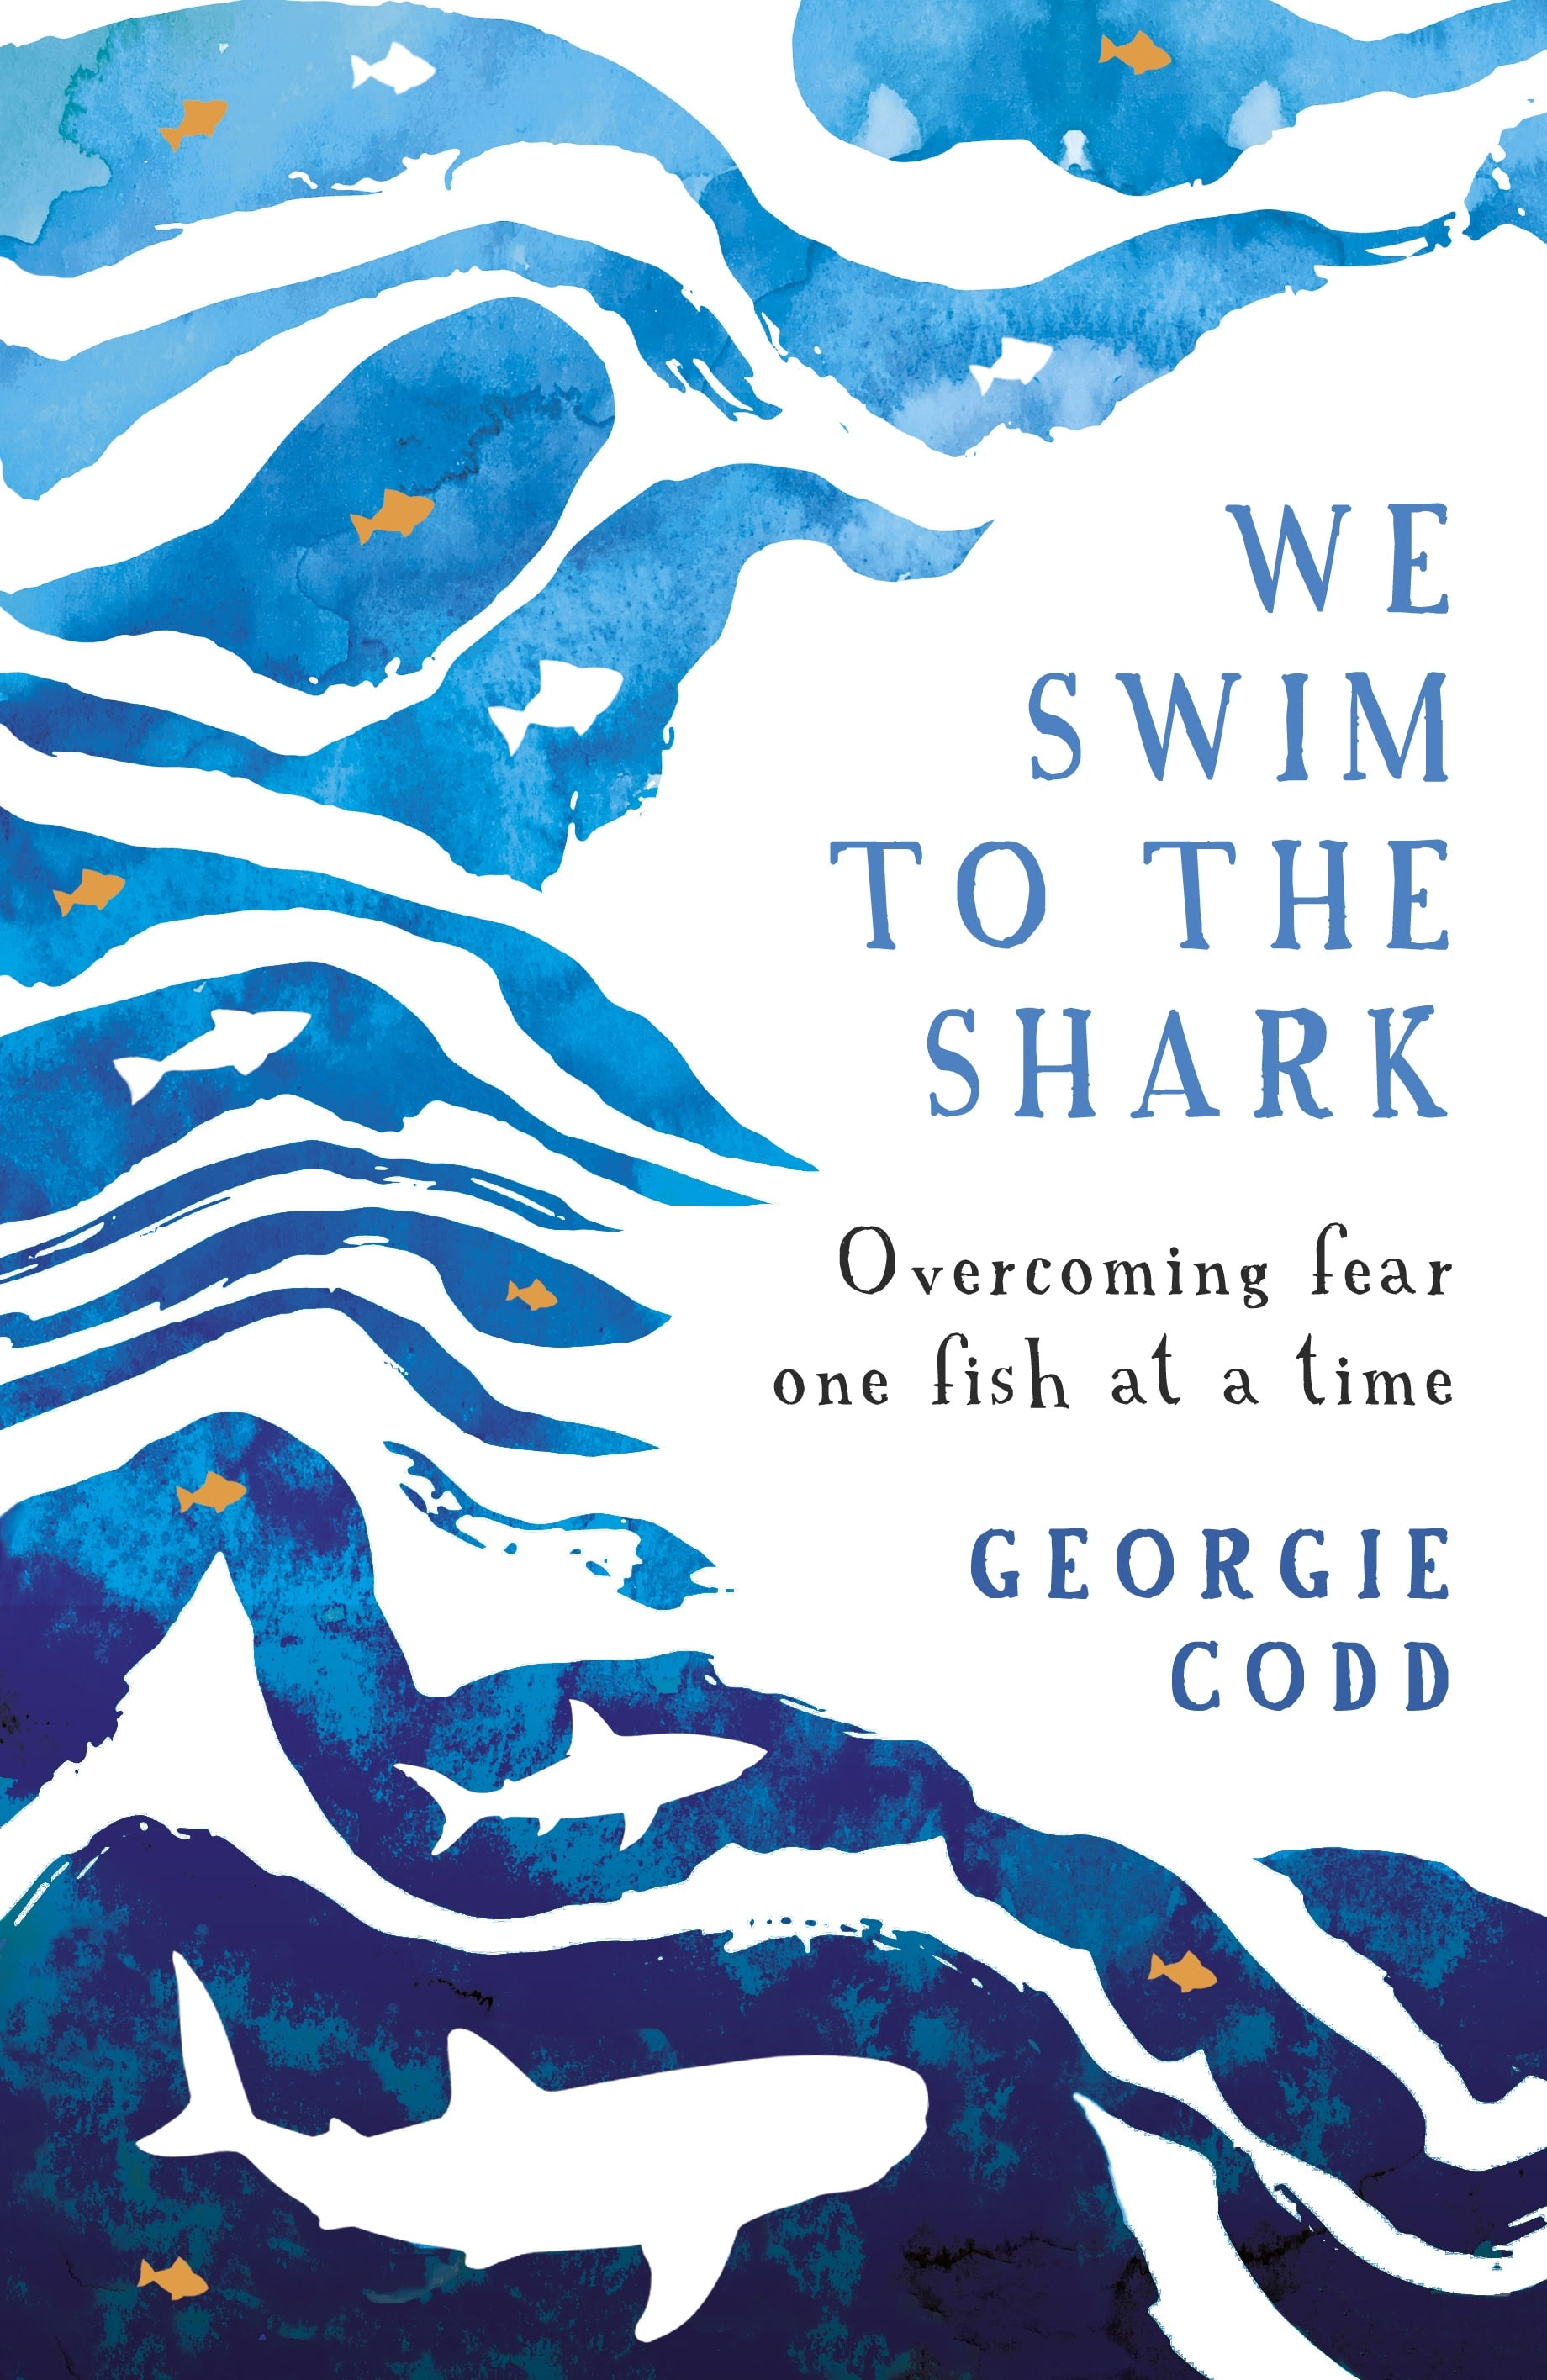 Georgie Codd's 'We Swim To The Shark'